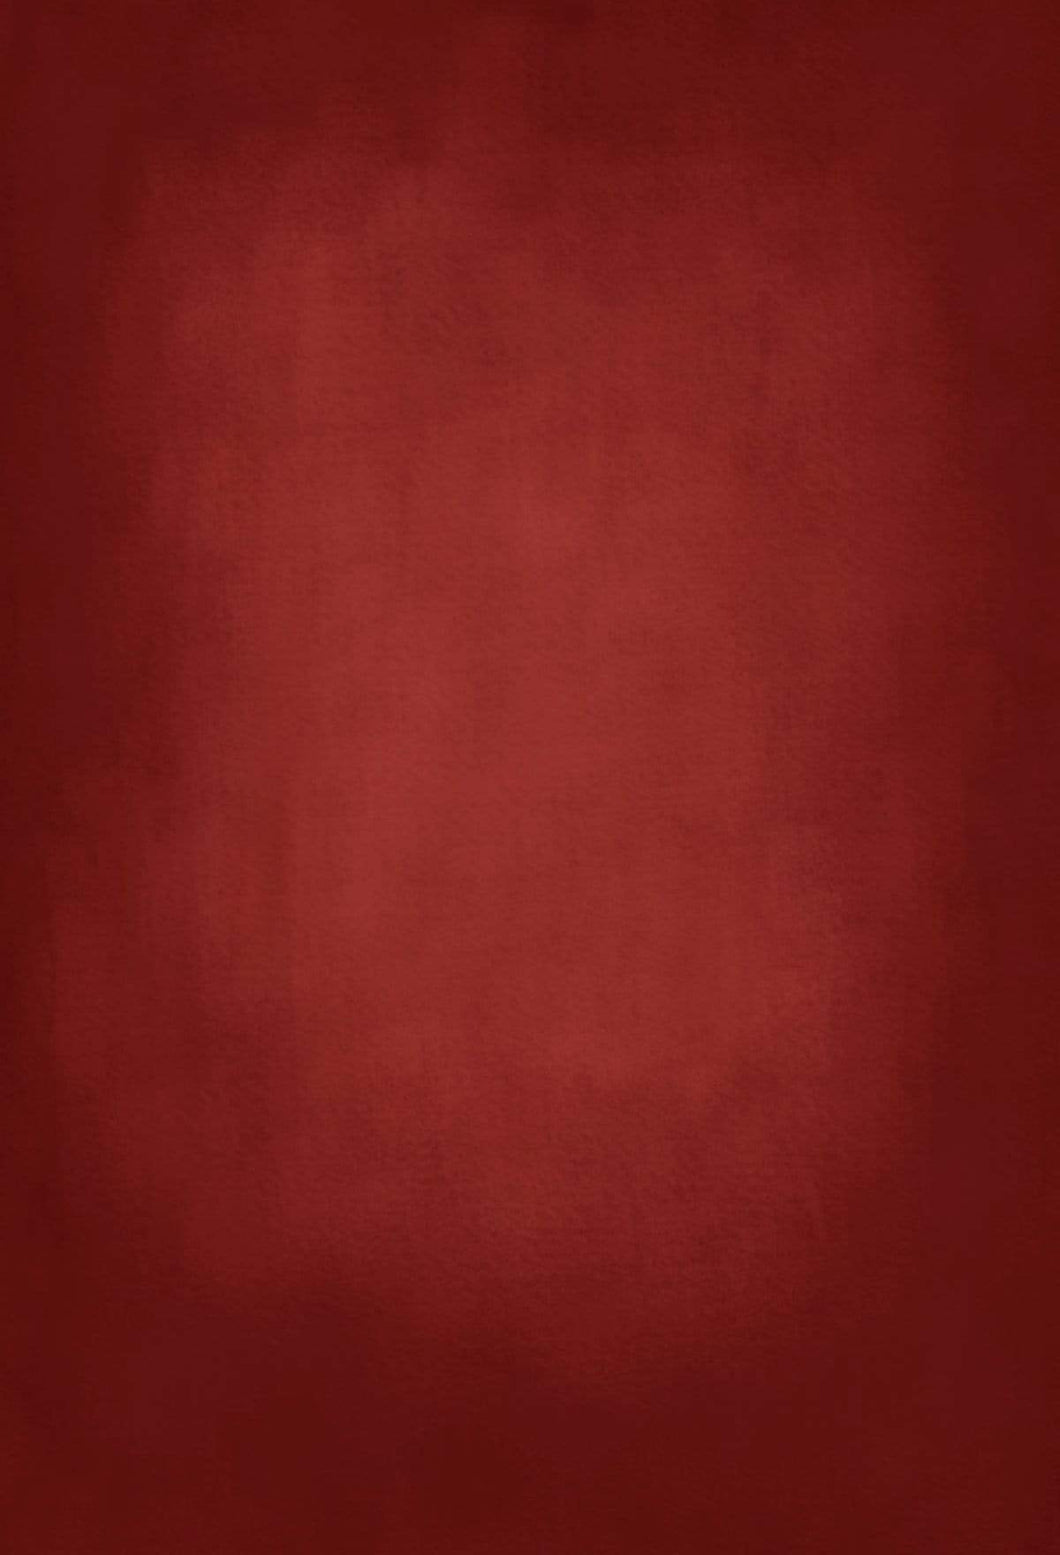 Katebackdrop:Kate Abstract Cold Red Texture Backdrop for Photography